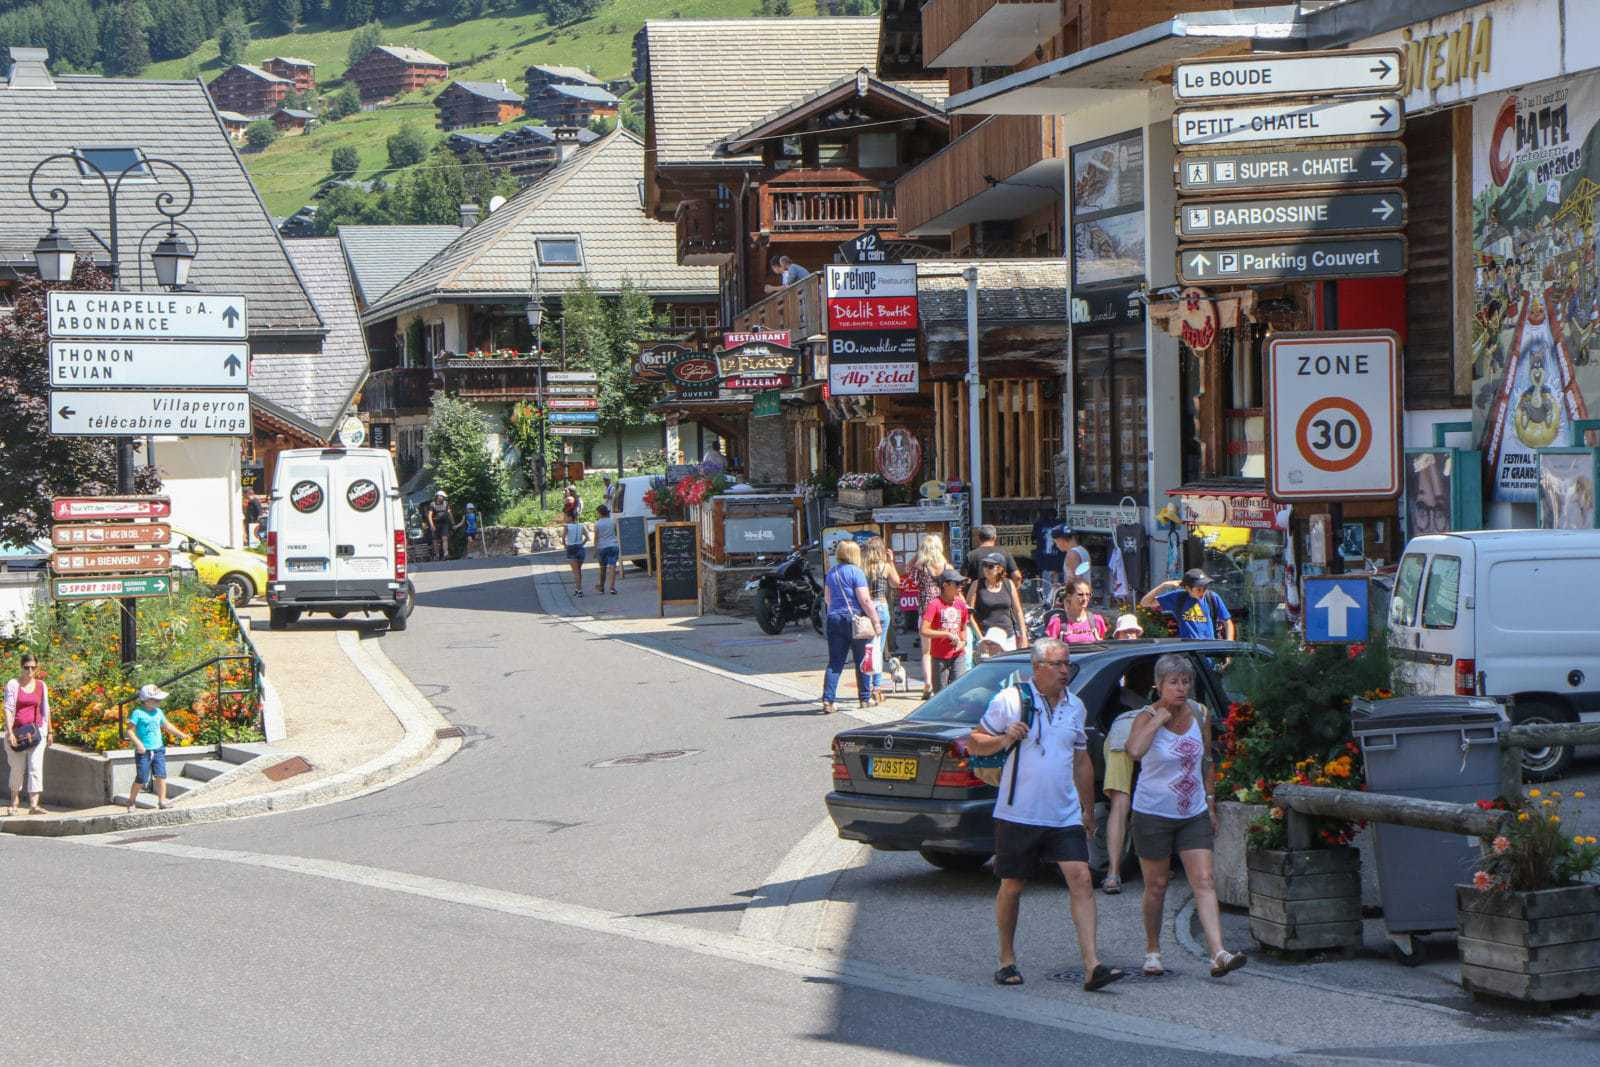 Street view of Chatel in the summer